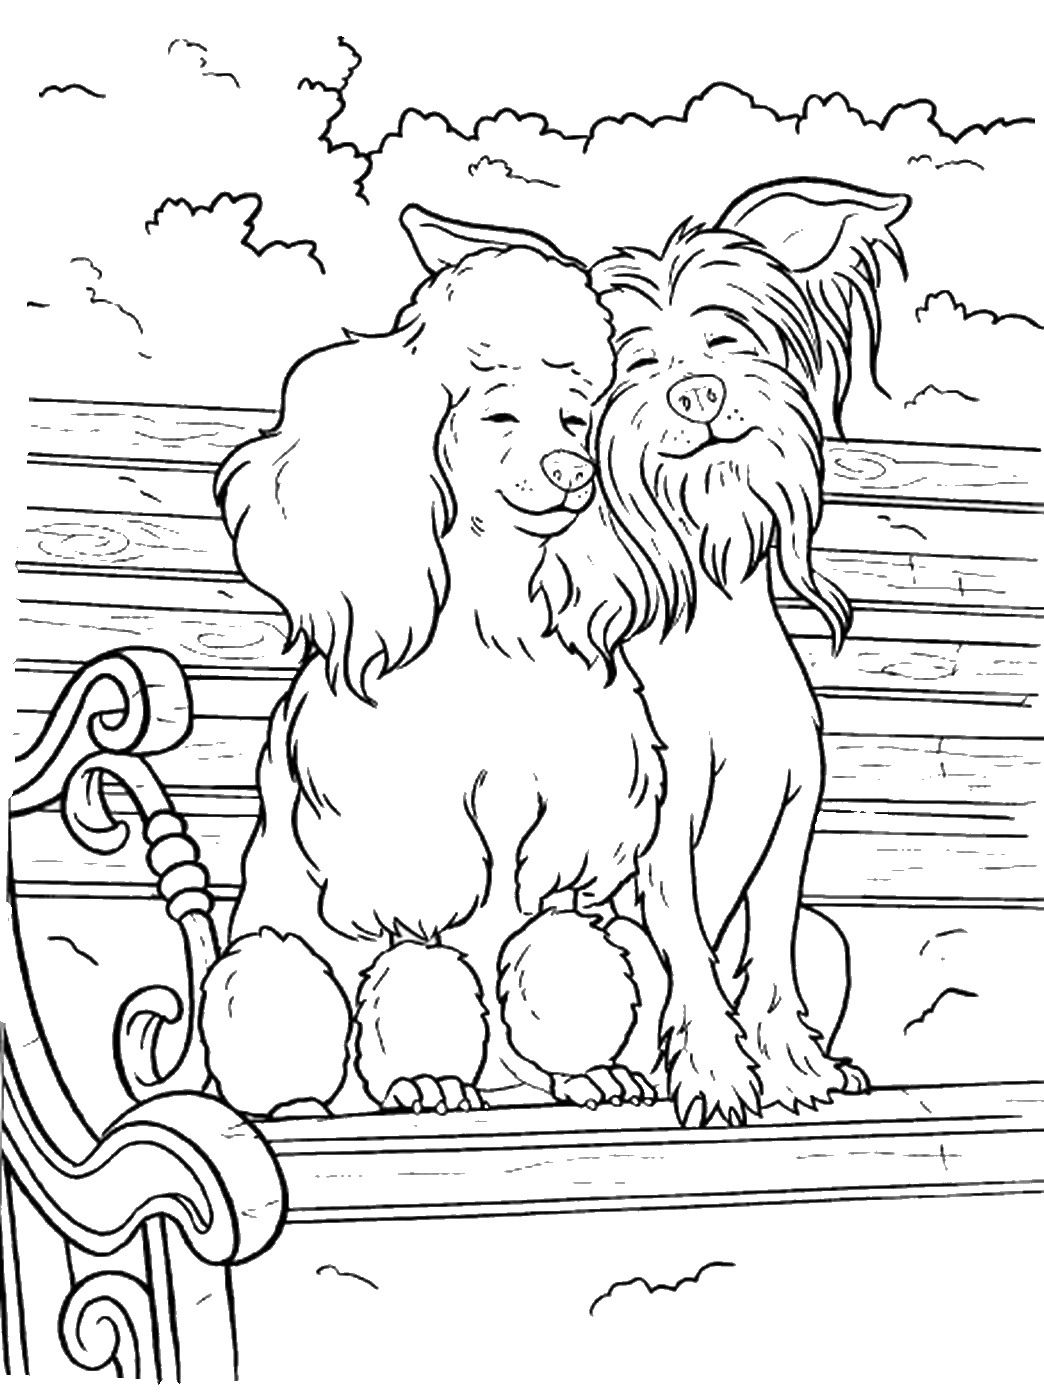 Pin von Kristi Magers auf Coloring Pages (Dogs, Wolves, Foxes ...